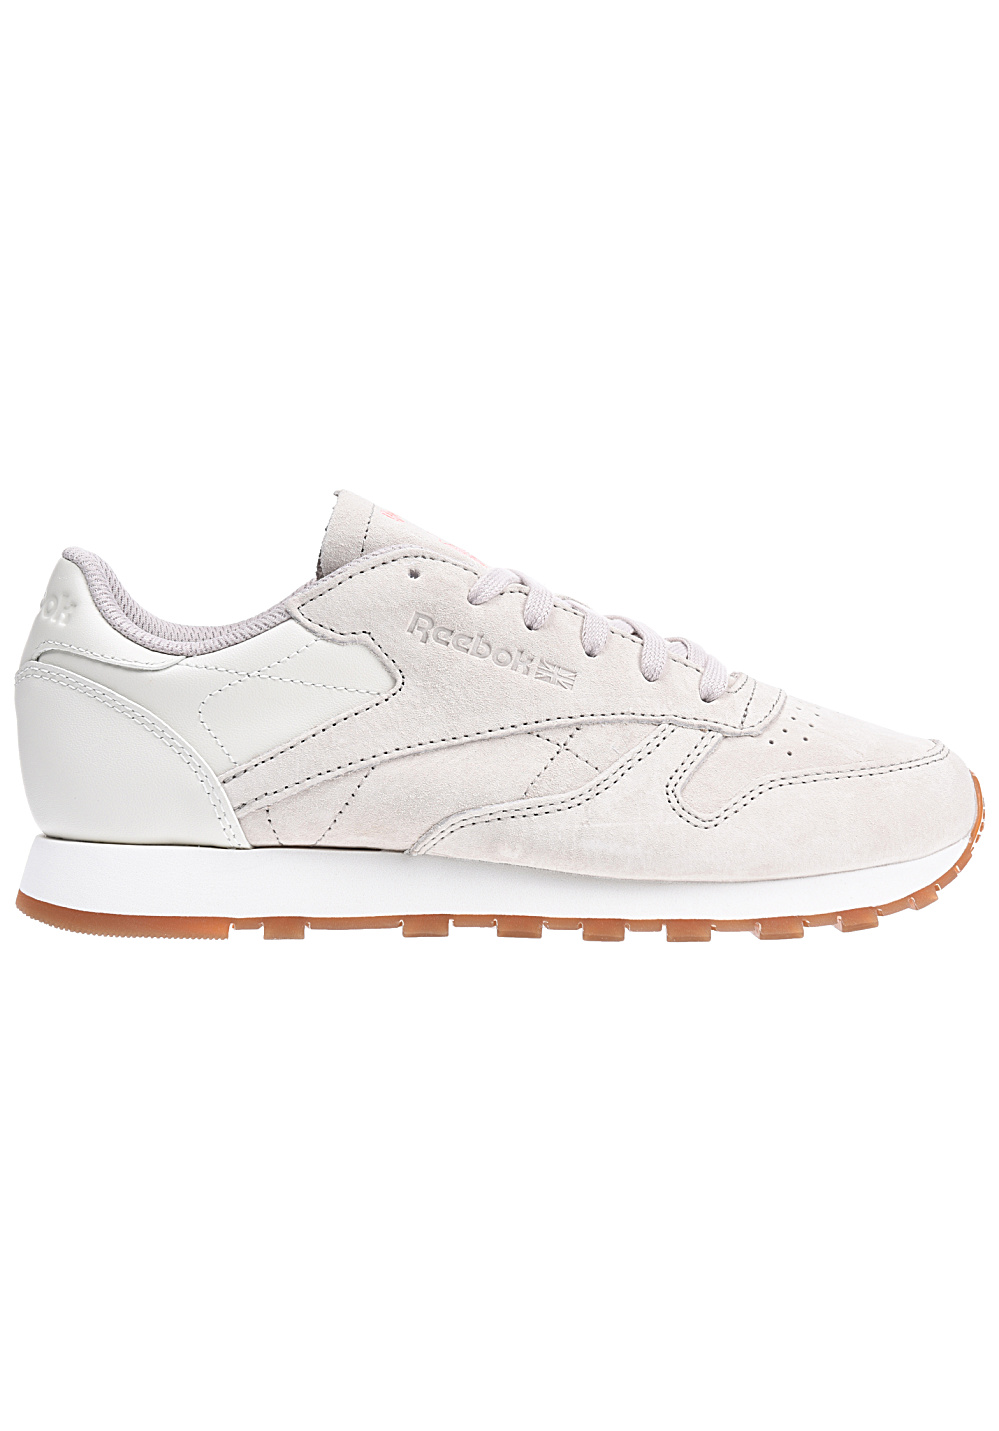 Reebok Classic Lthr EB Sneakers for